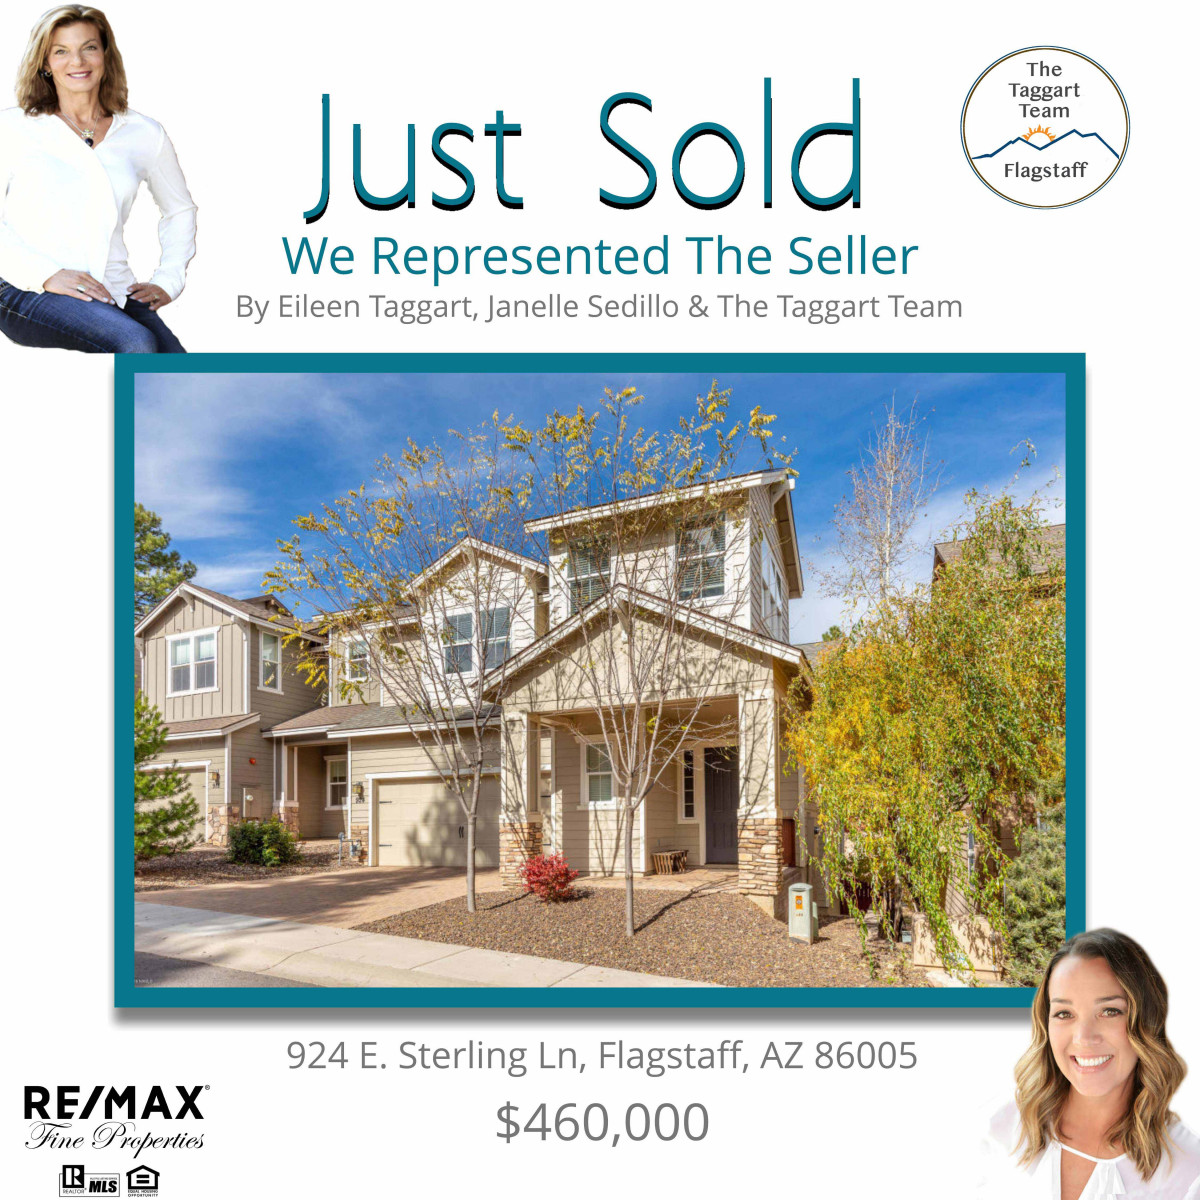 924 E. Sterling Ln. Just Sold